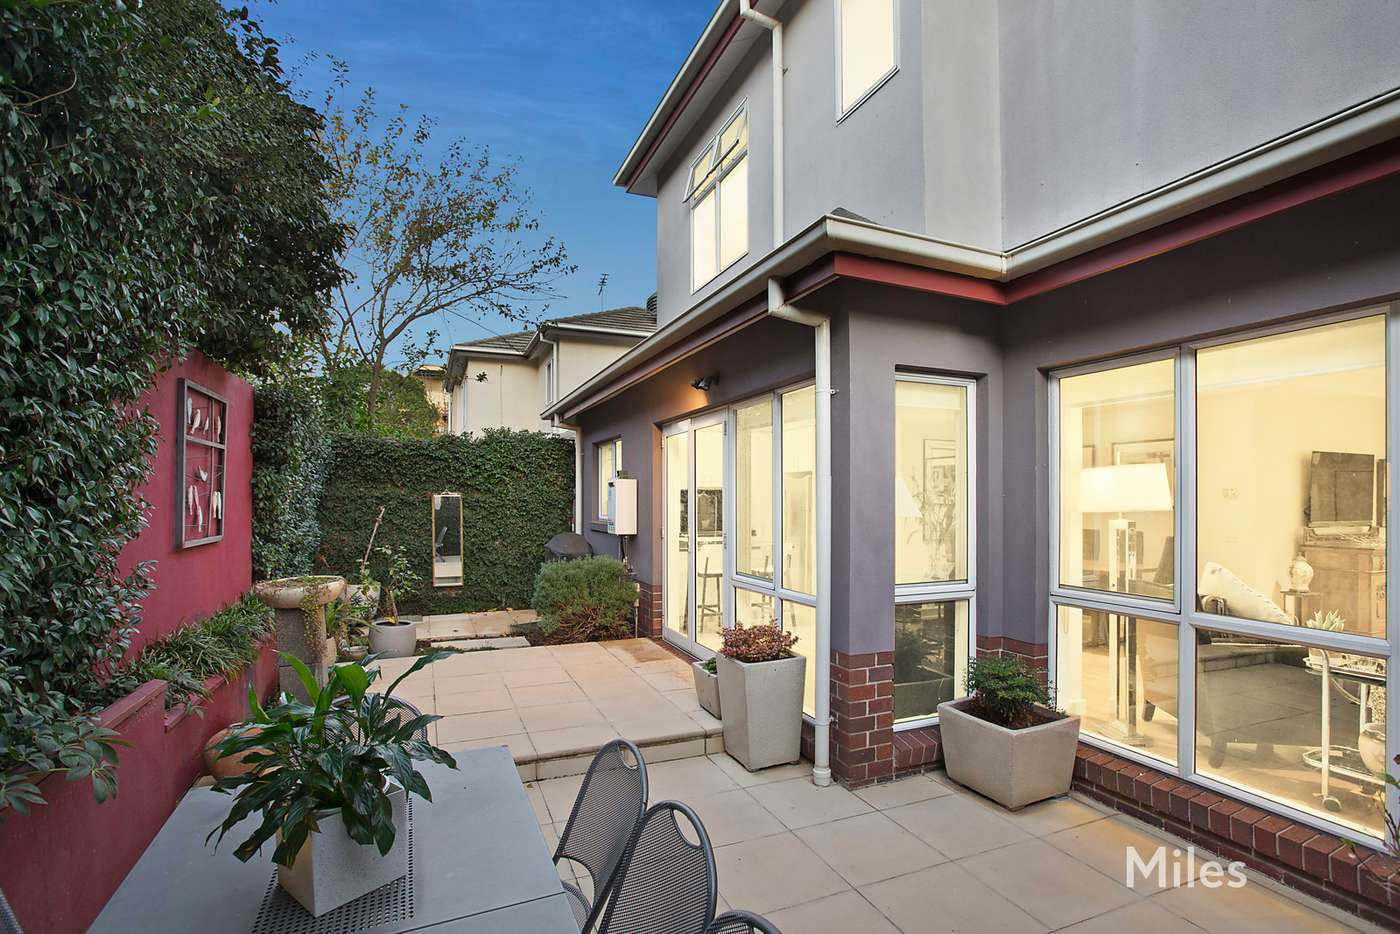 Sixth view of Homely townhouse listing, 2/2 Noel Street, Ivanhoe VIC 3079